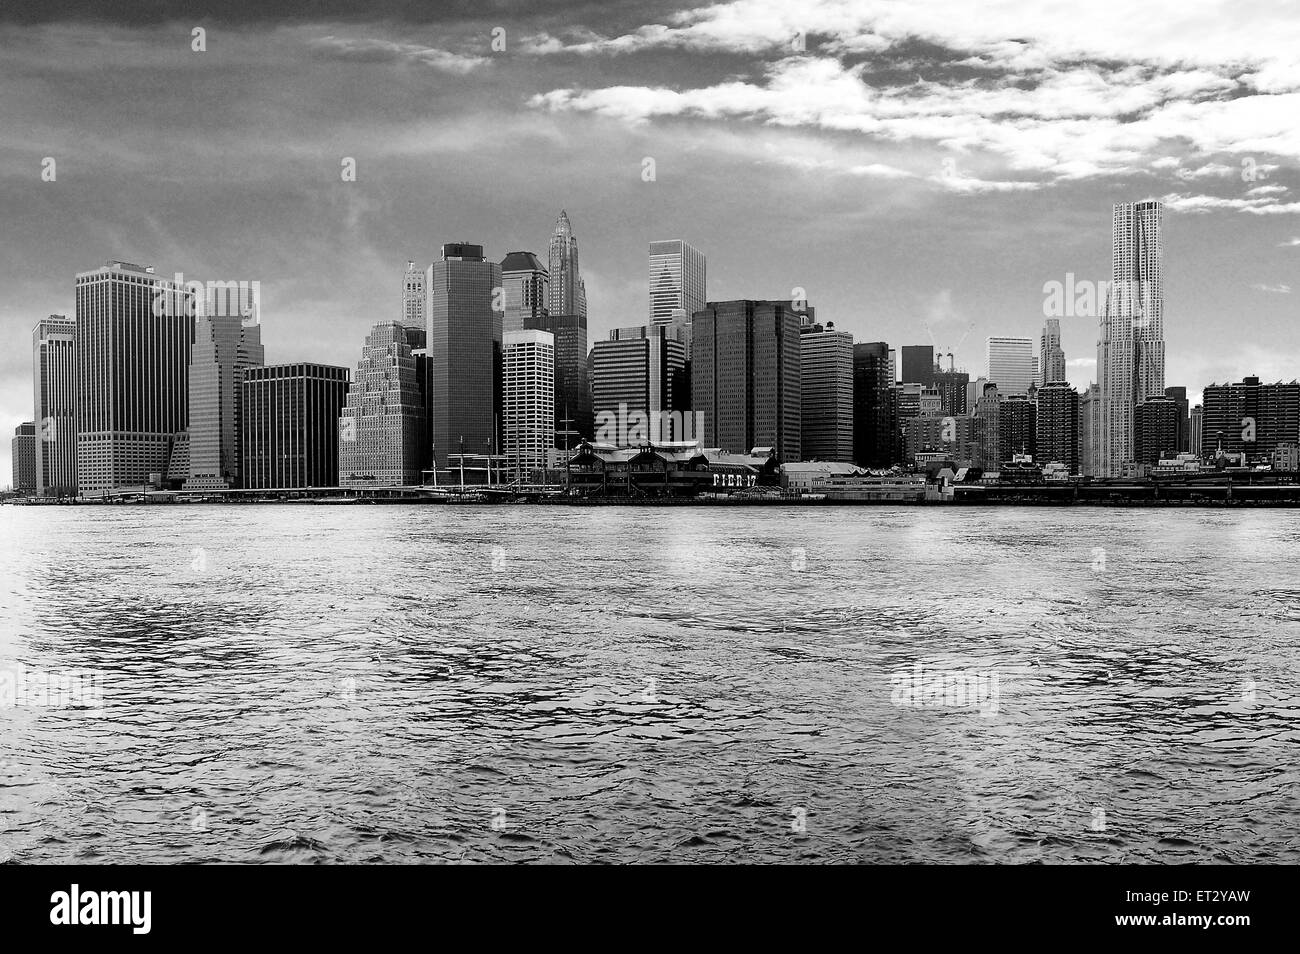 Looking for the best views of New York City this is iconic Manhattan skyline taken over the East River - USA - Stock Image